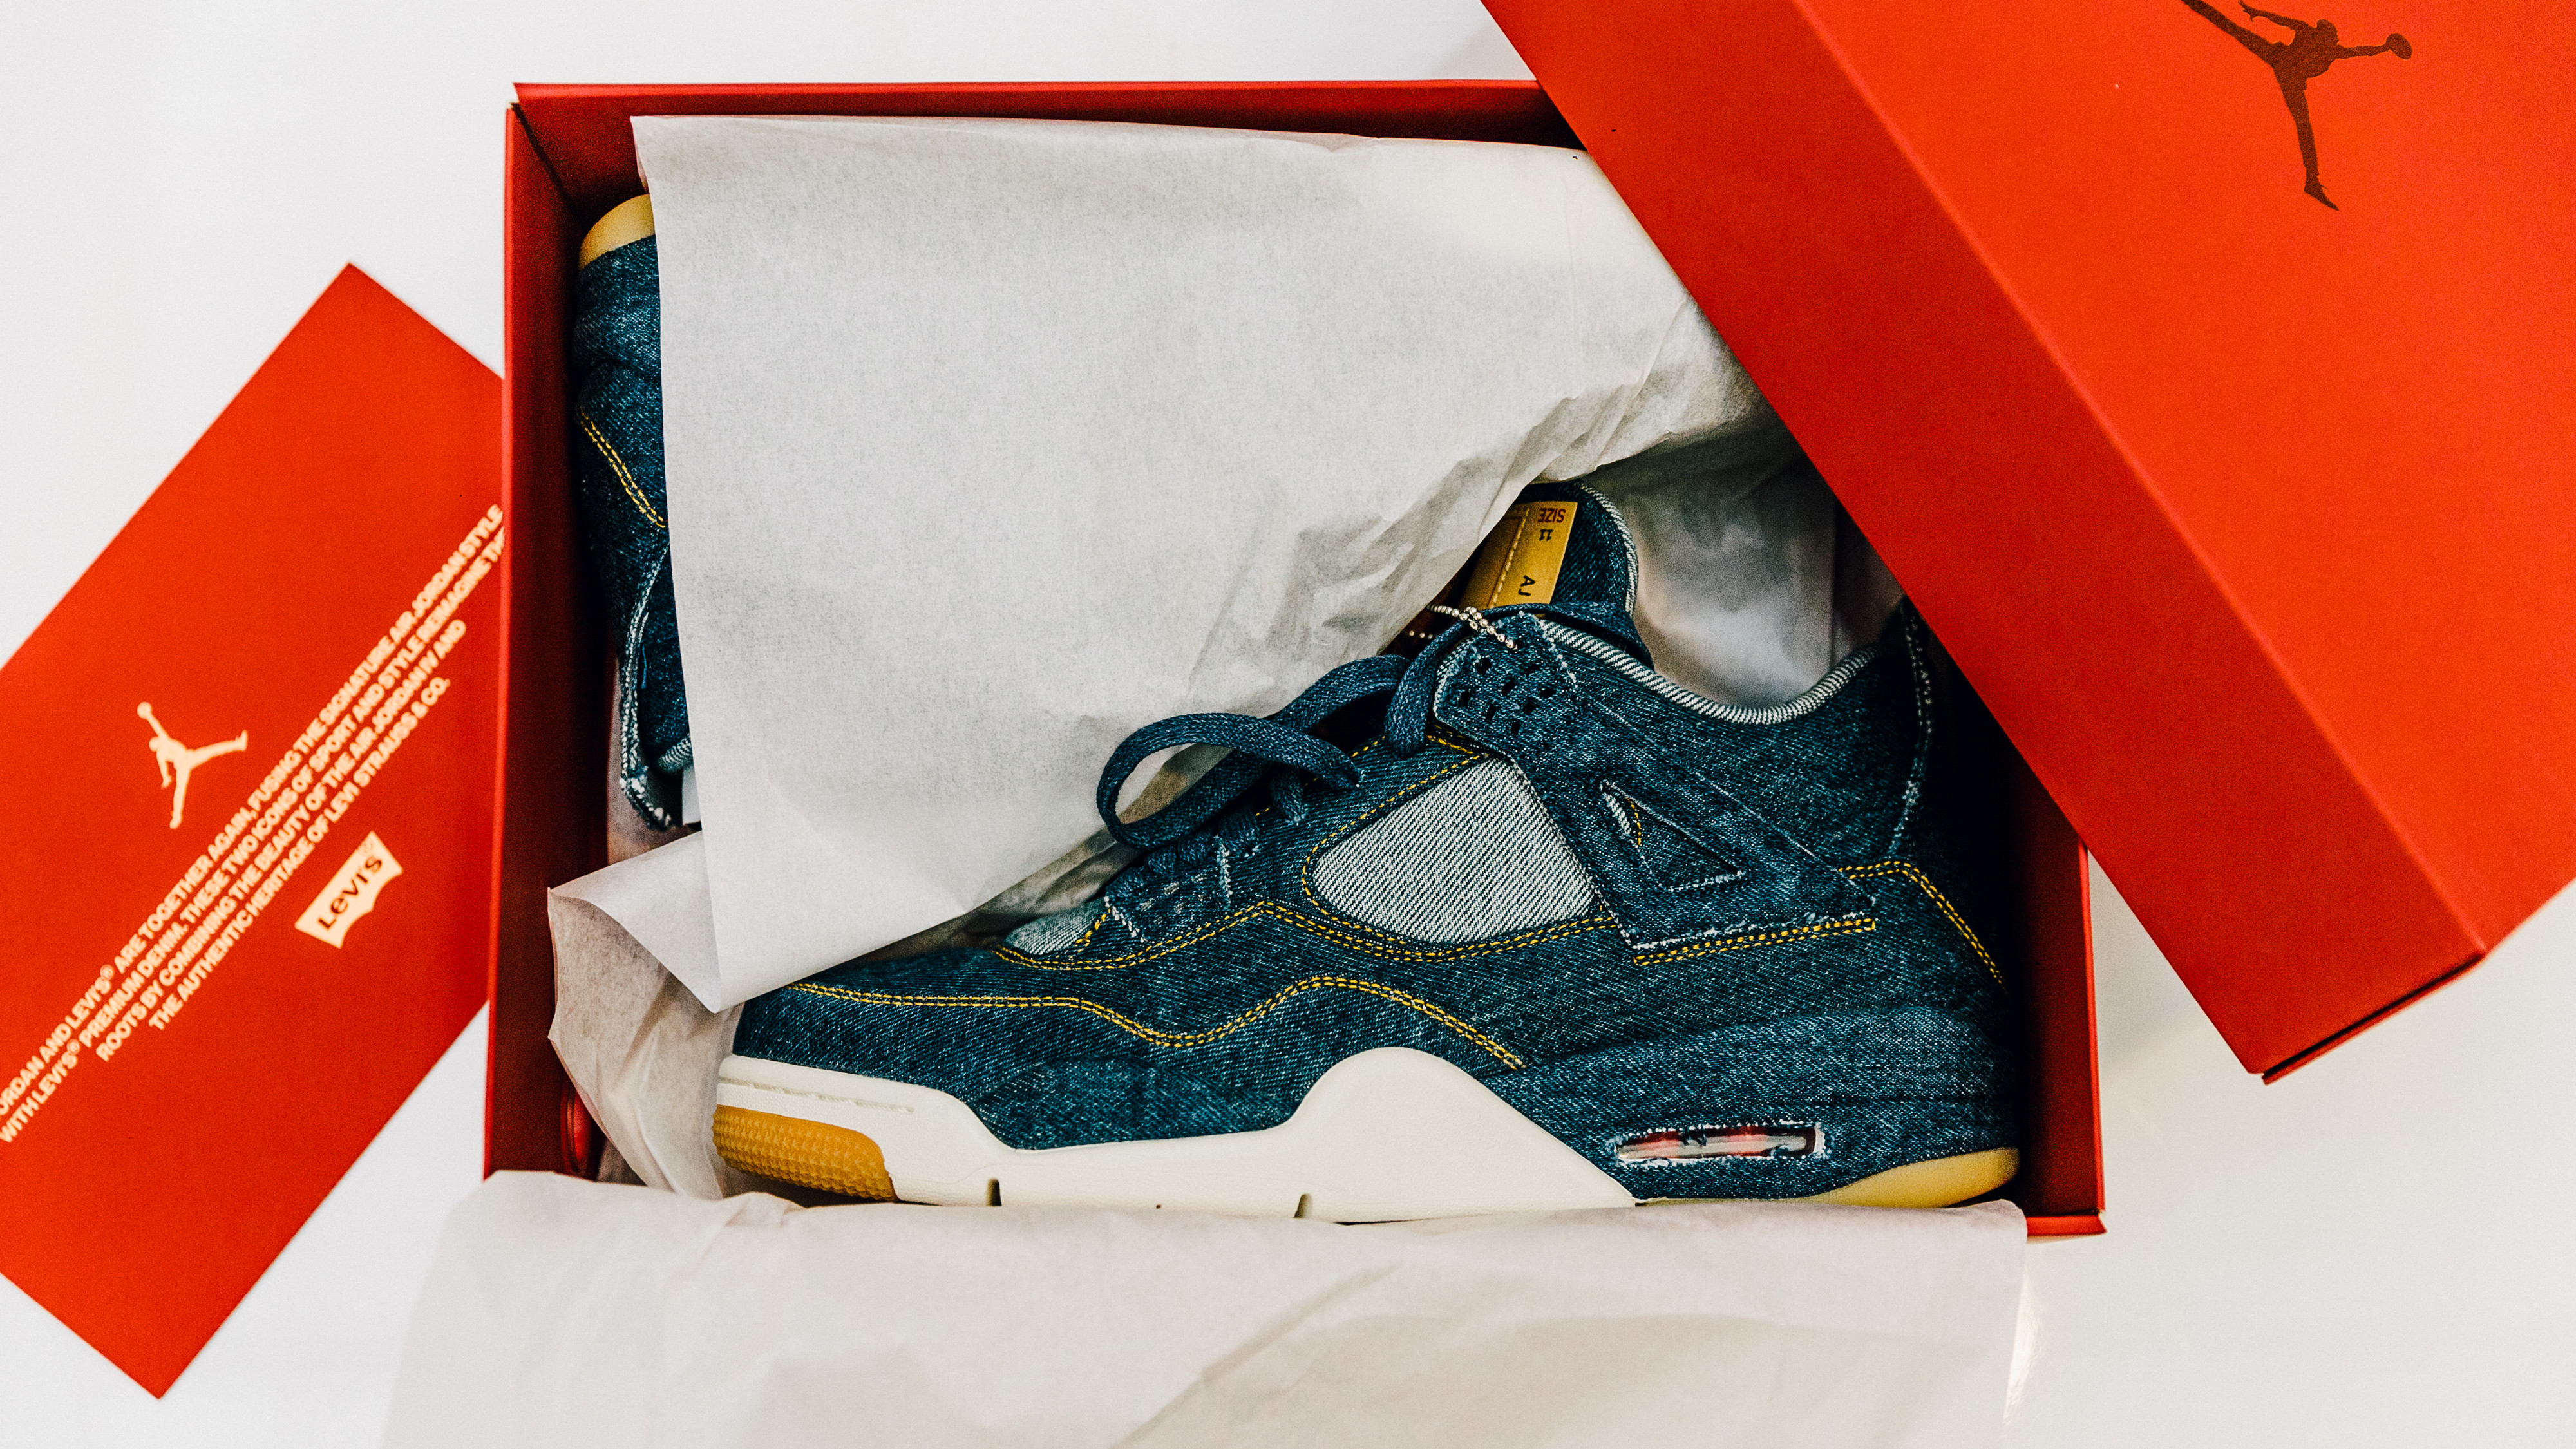 NYPD Shuts Down Levi's Air Jordan Launch Due to